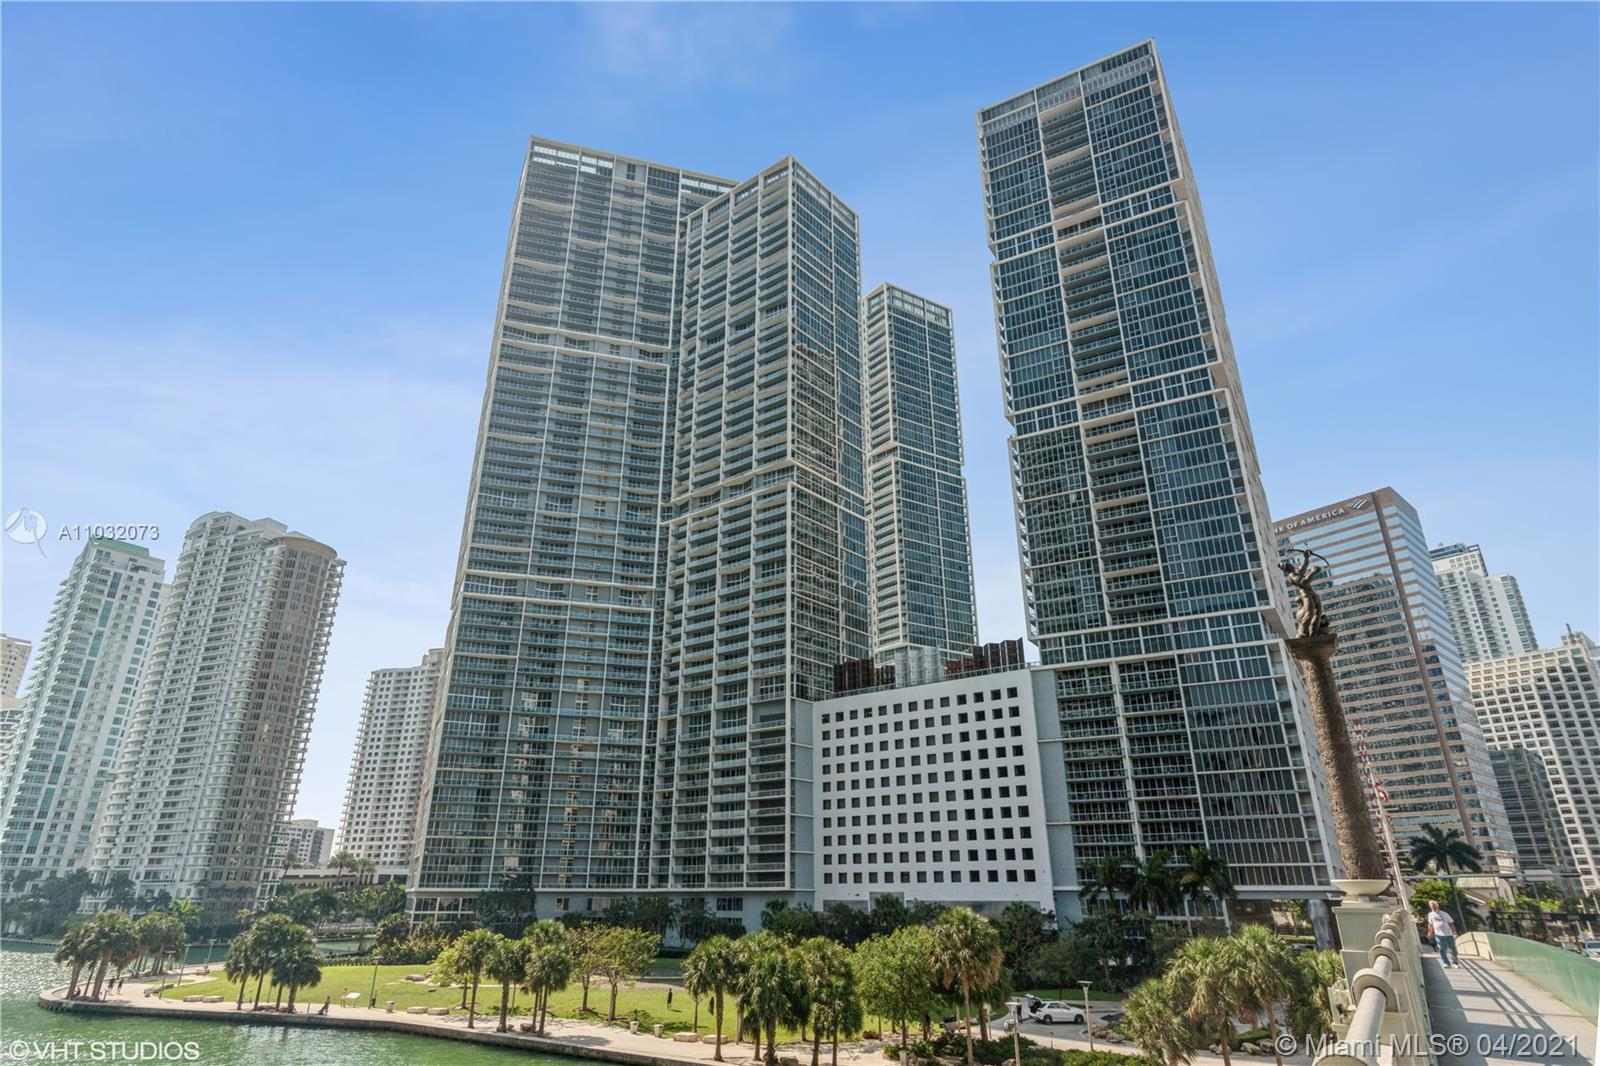 Direct water views from this high floor unit! Spacious 1 bed and 1 bath with balcony overlooking the